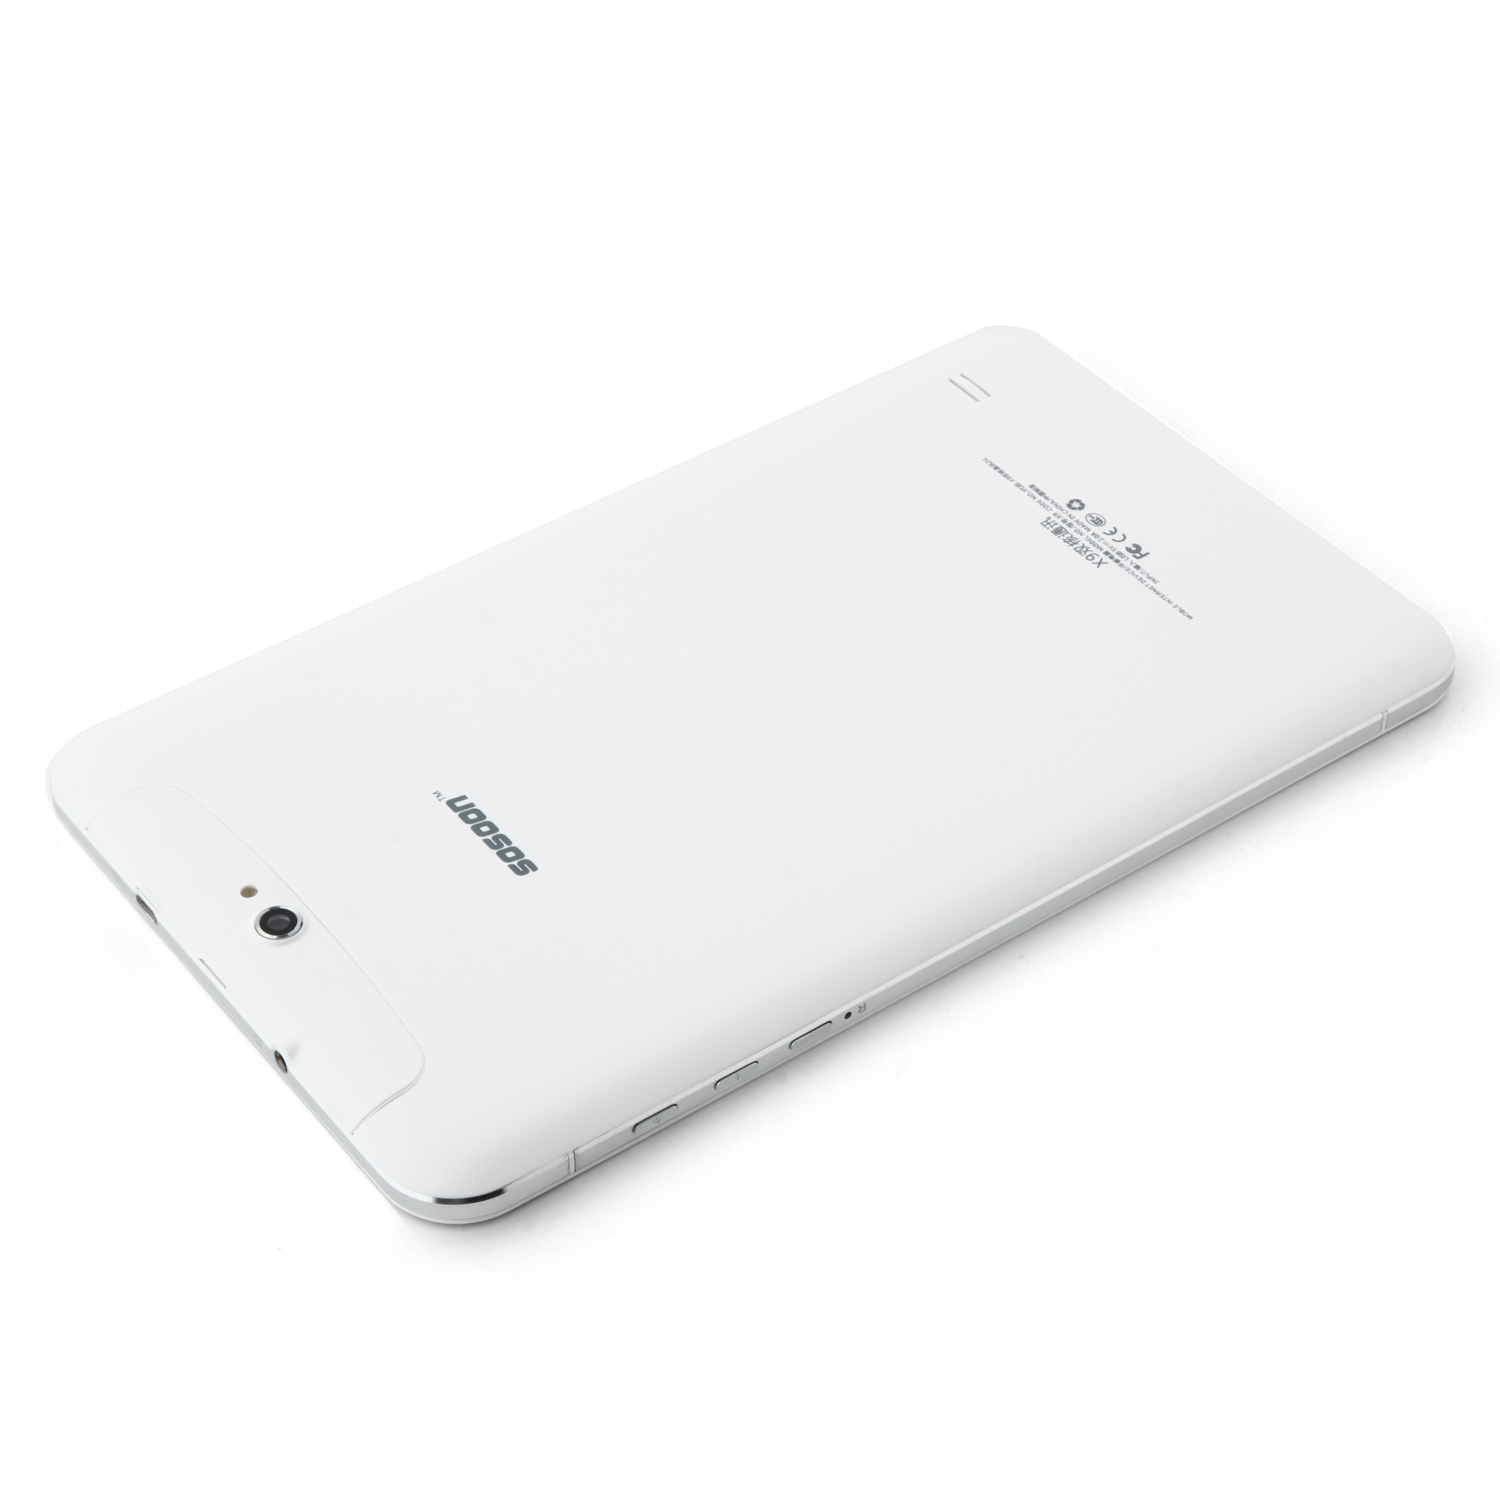 SOSOON X9 Tablet PC MTK6572M Dual Core 9.0 Inch Android 4.2 2G/GSM 4GB White